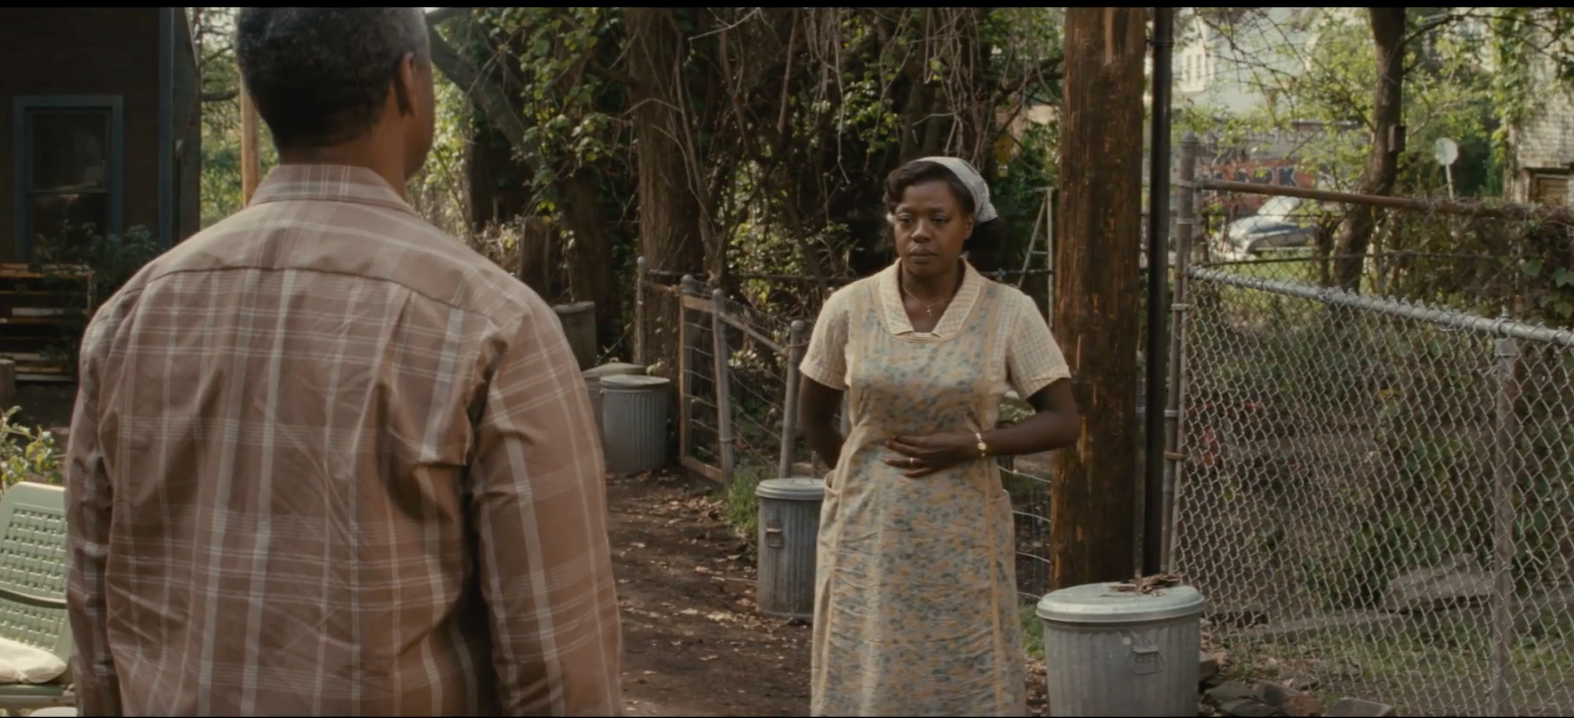 Movie Night Feature: FENCES, A Powerful Drama Film!